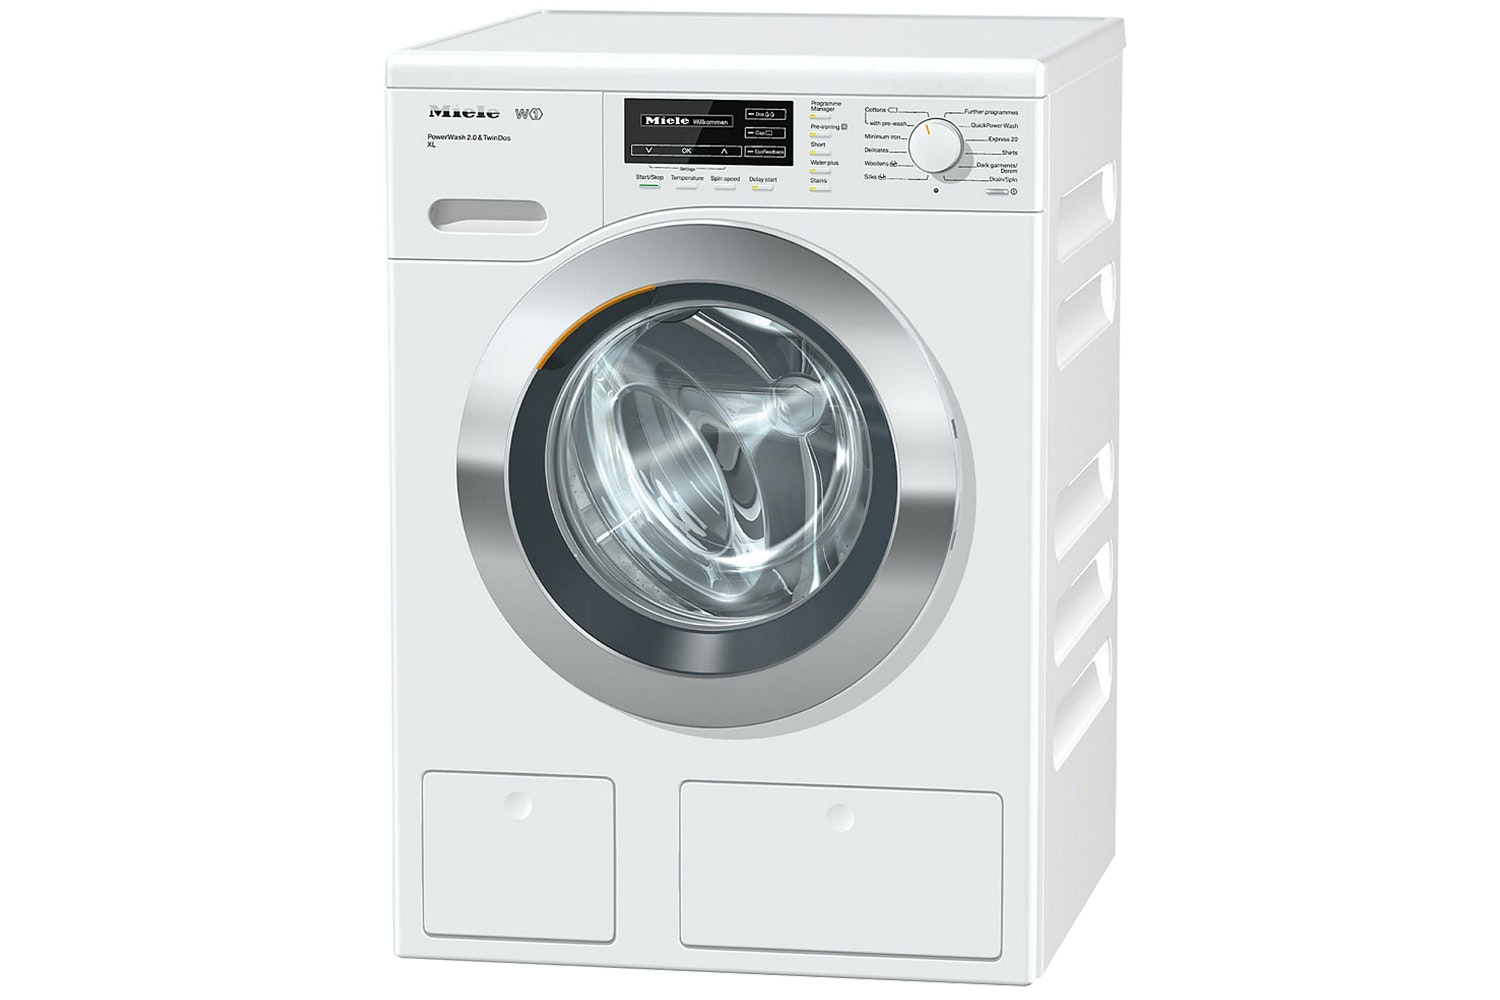 WKF322 SpeedCare XL Front-loading washing machine W1 with PowerWash system and CapDosing